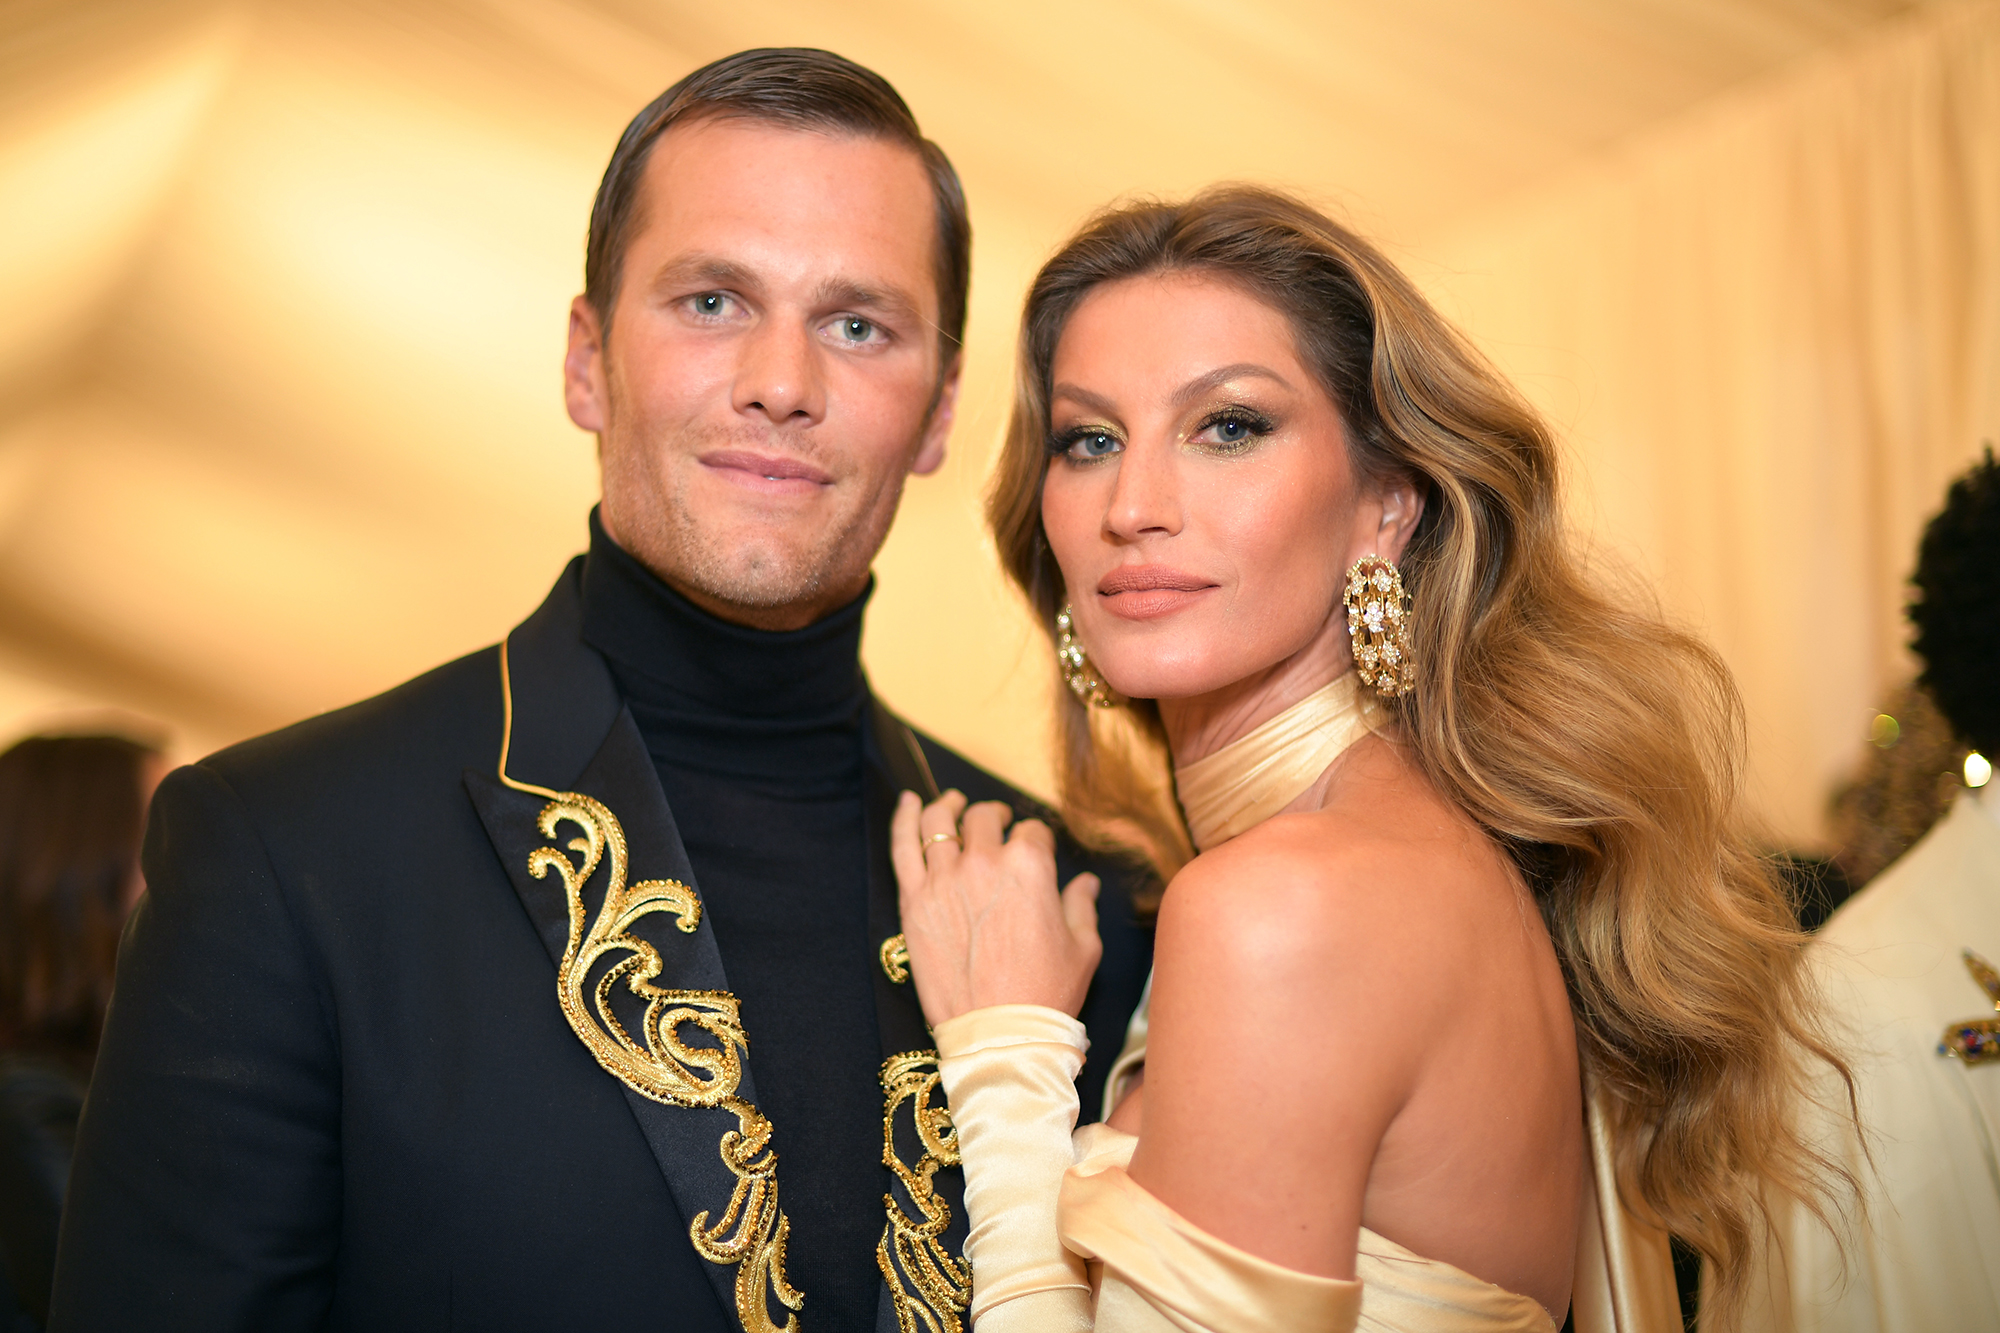 Tom Brady and Gisele Bundchen: A Timeline of Their Relationship - Tom Brady and Gisele Bundchen attend the Heavenly Bodies: Fashion & The Catholic Imagination Costume Institute Gala at The Metropolitan Museum of Art on May 7, 2018 in New York City.